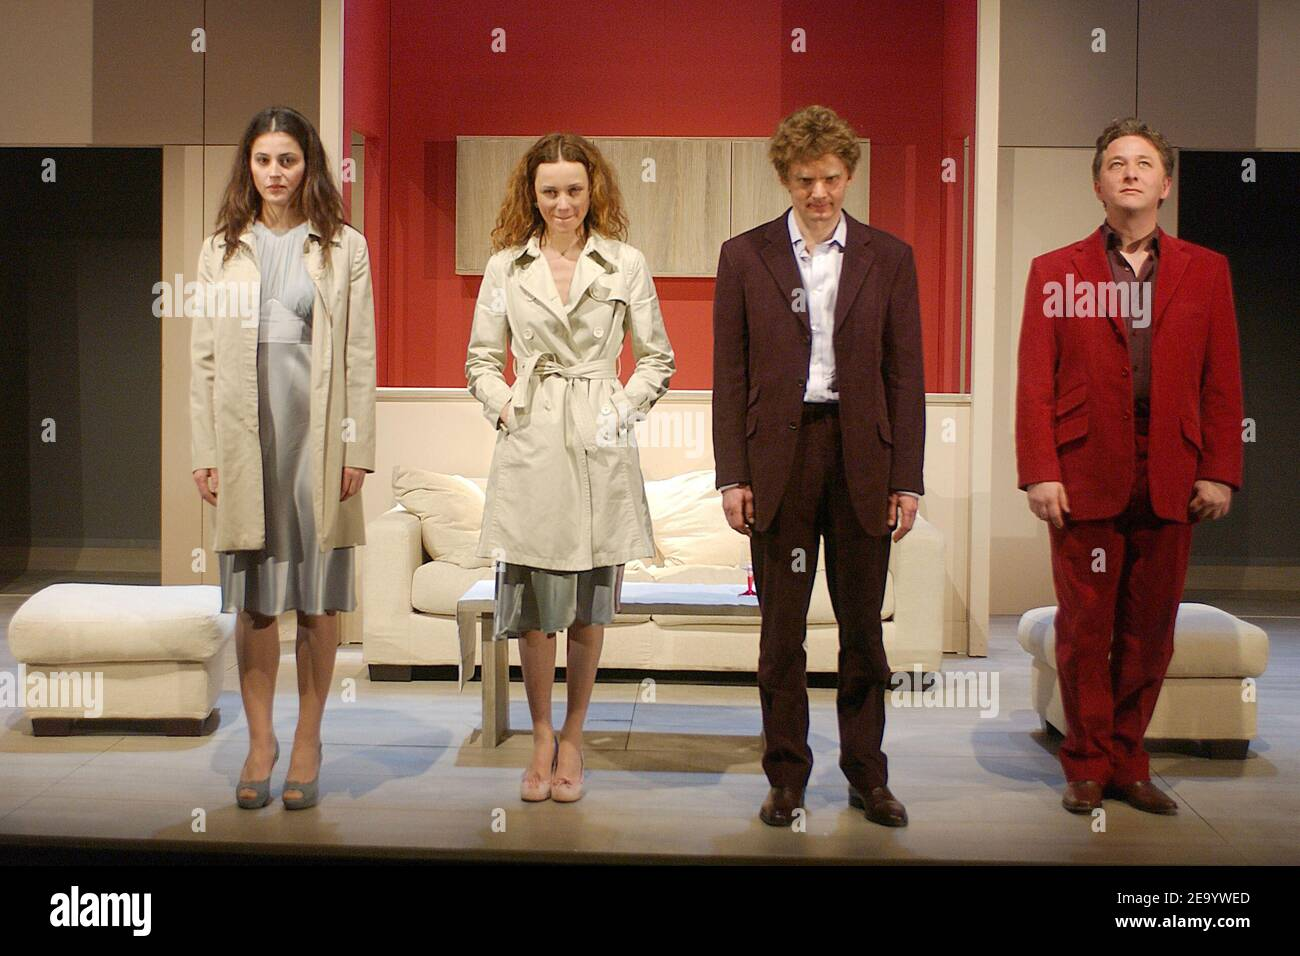 (L-R) Anne Charrier, Marine Delterme, Nicolas Briancon and Nicolas Vaude perform in the play 'Le Manege' at Petit Theatre Montparnasse in Paris, France, on January 25, 2005. Photo by Giancarlo Gorassini/ABACA. Stock Photo